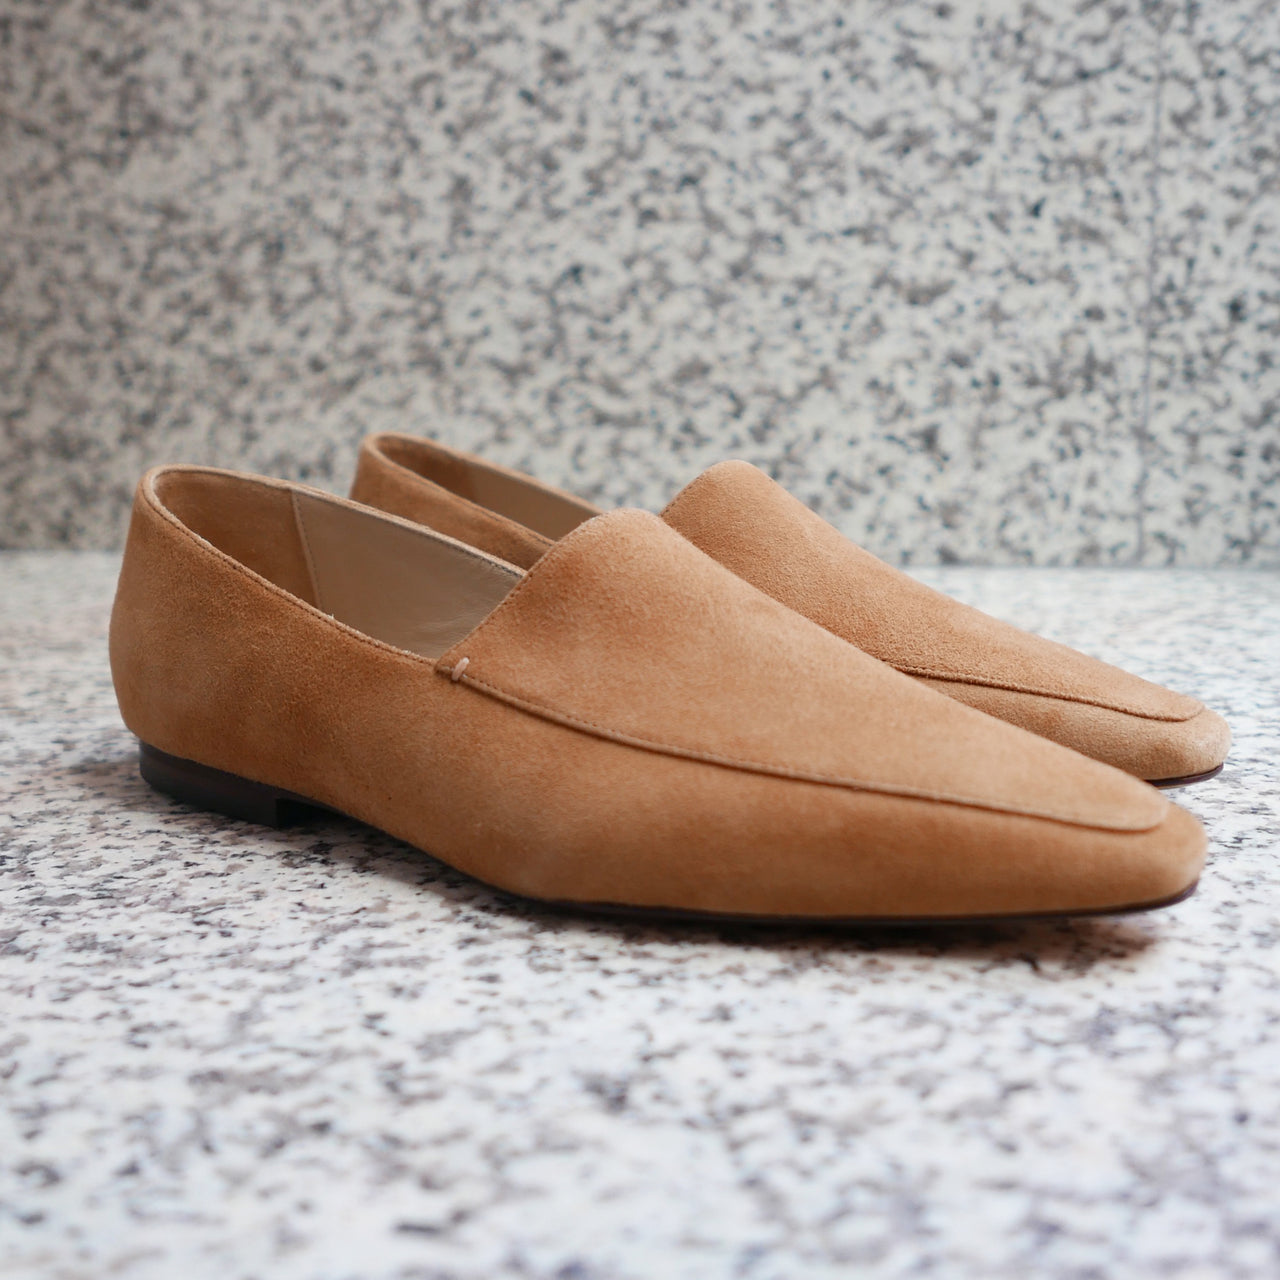 MARI GIUDICELLI Madison Loafer Suede in Tan